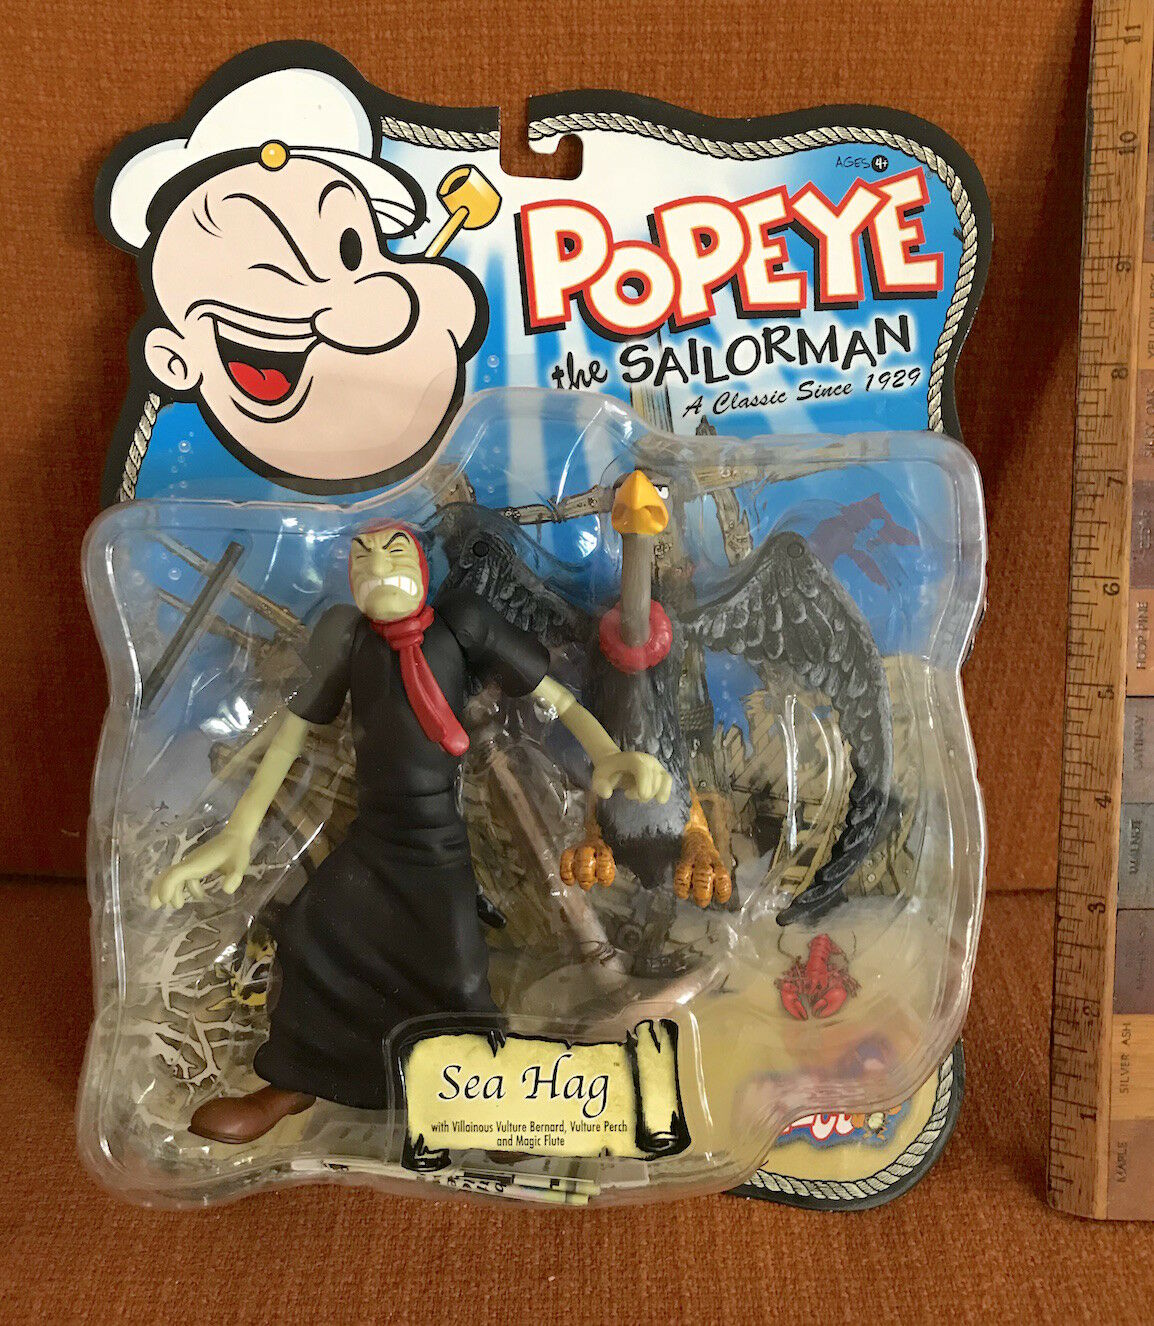 VINTAGE 2001 SEA HAG POPEYE THE SAILOR-MAN 5 INCH ACTION FIGURE MEZCO WITCH NMOC